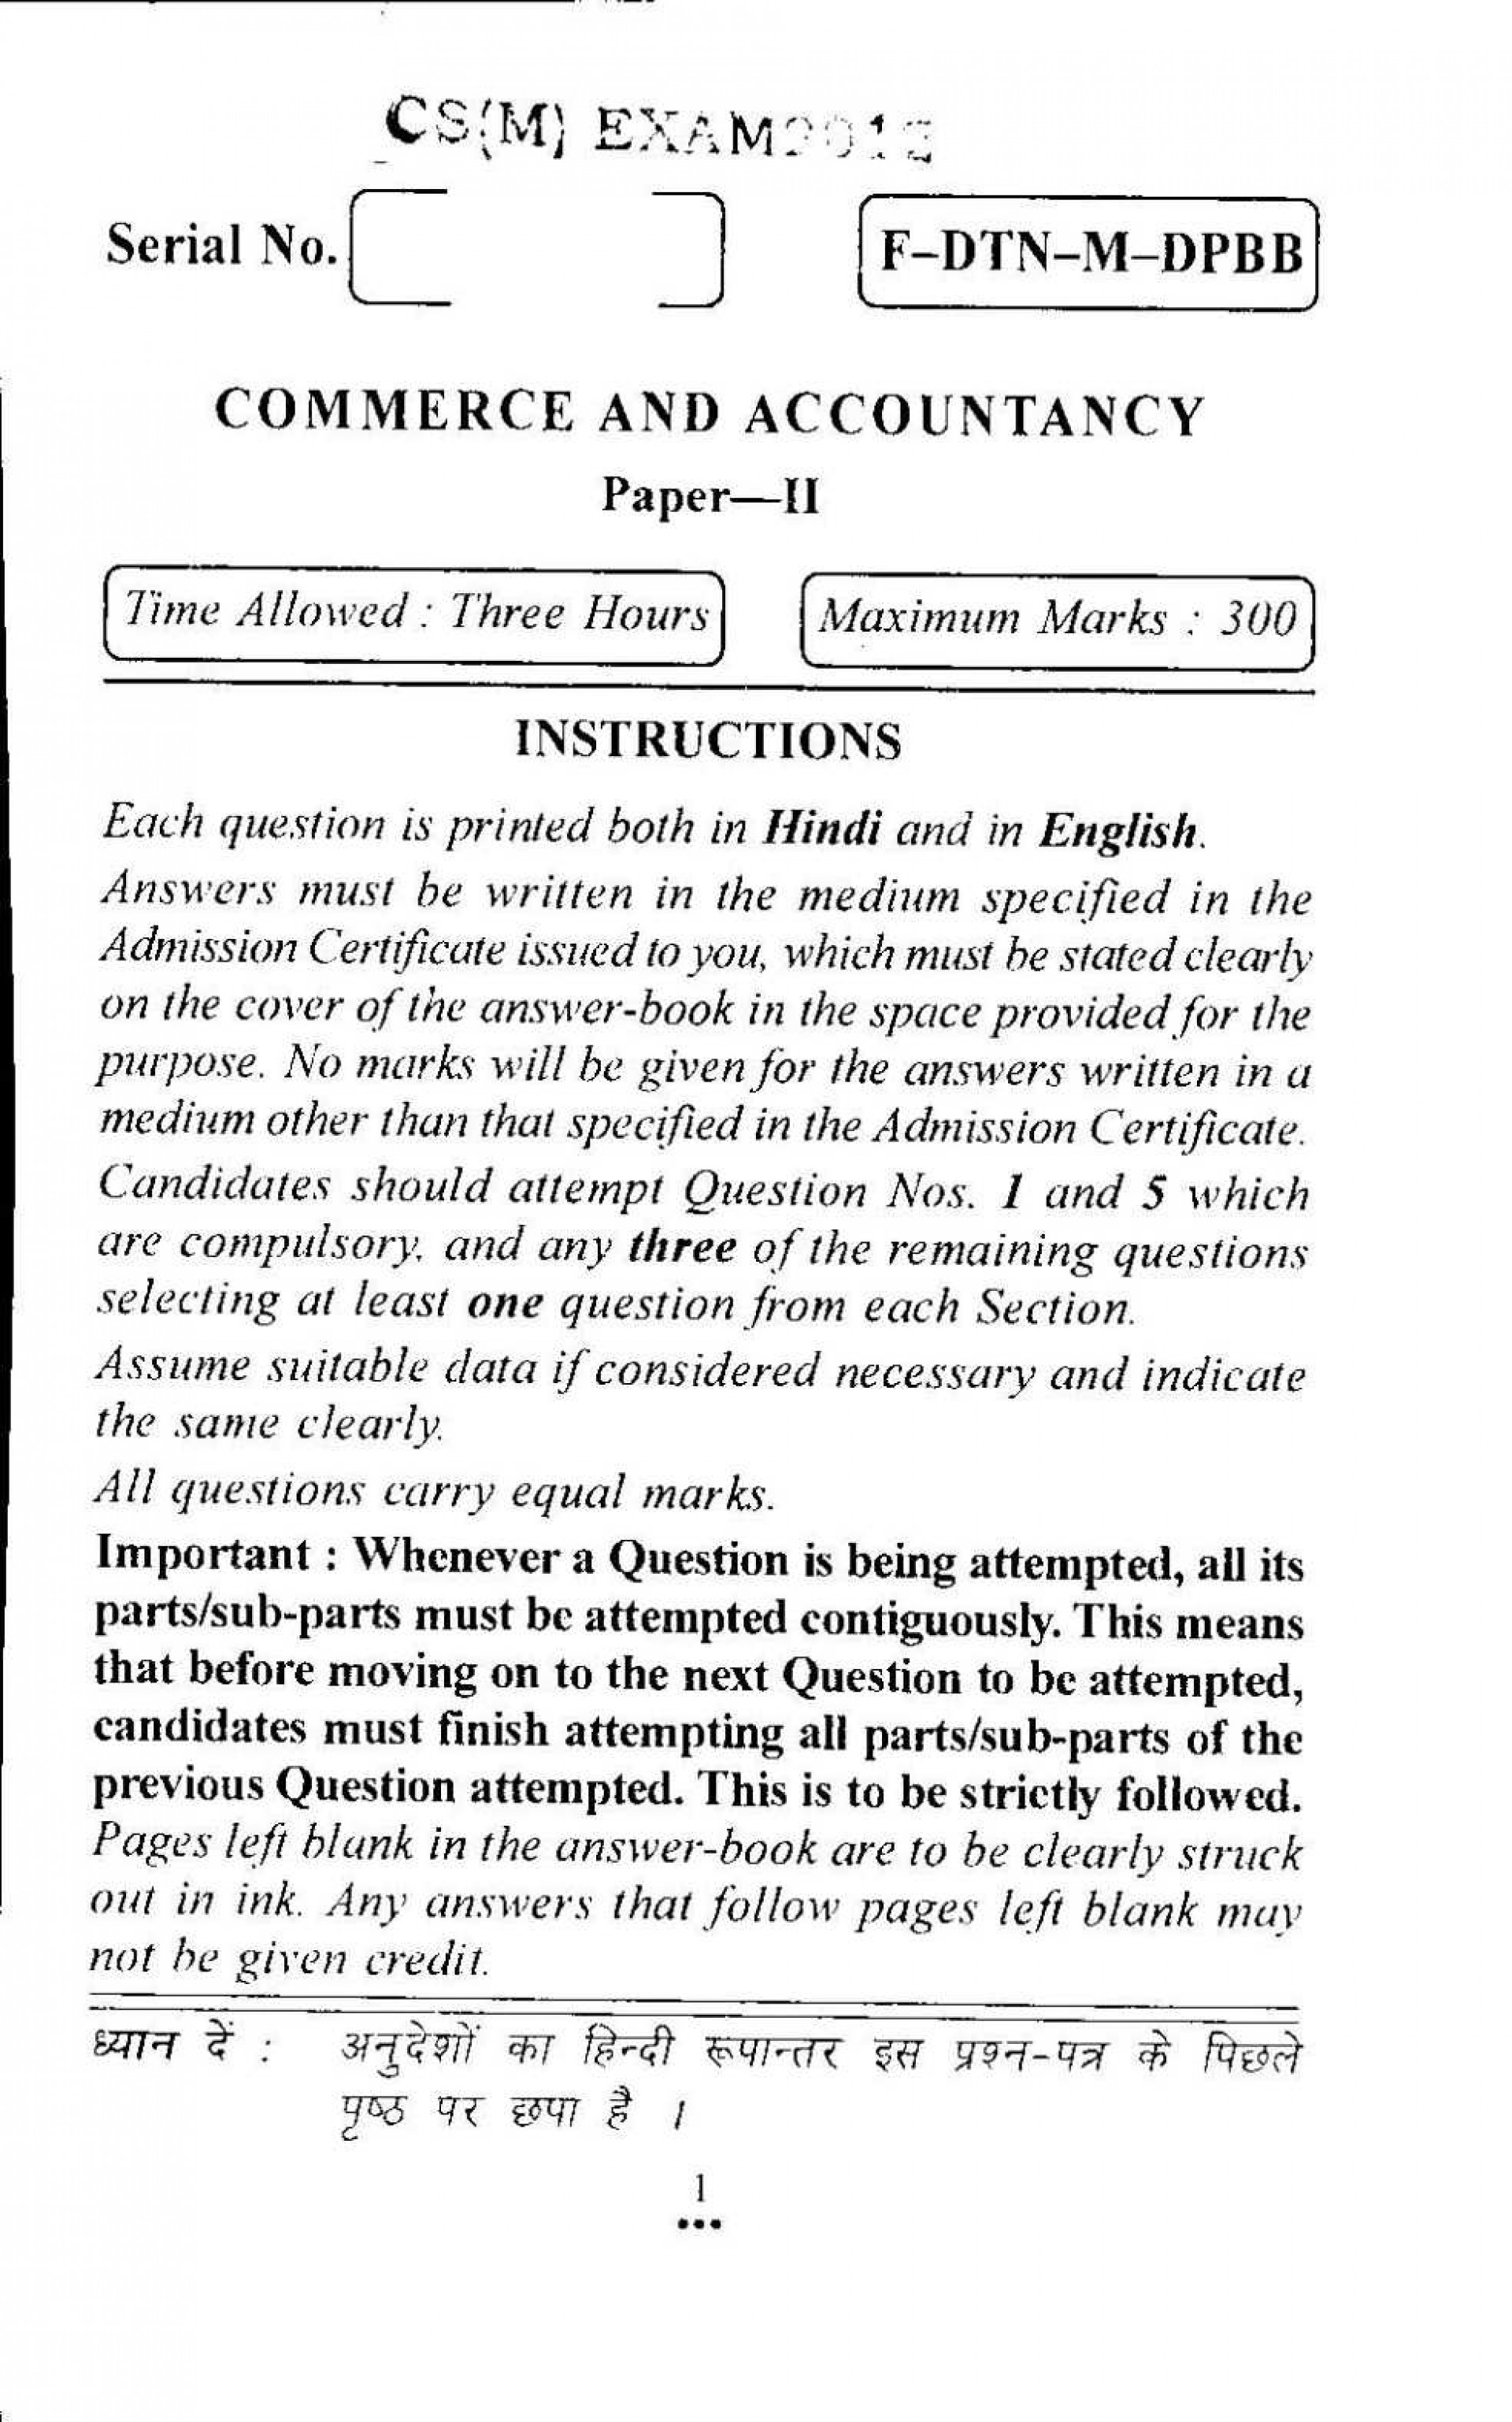 011 Civil Services Examination Commerce And Accountancy Paper Ii Previous Years Que Essay Example Marvelous Racism Argumentative Topics Persuasive In Canada 1920